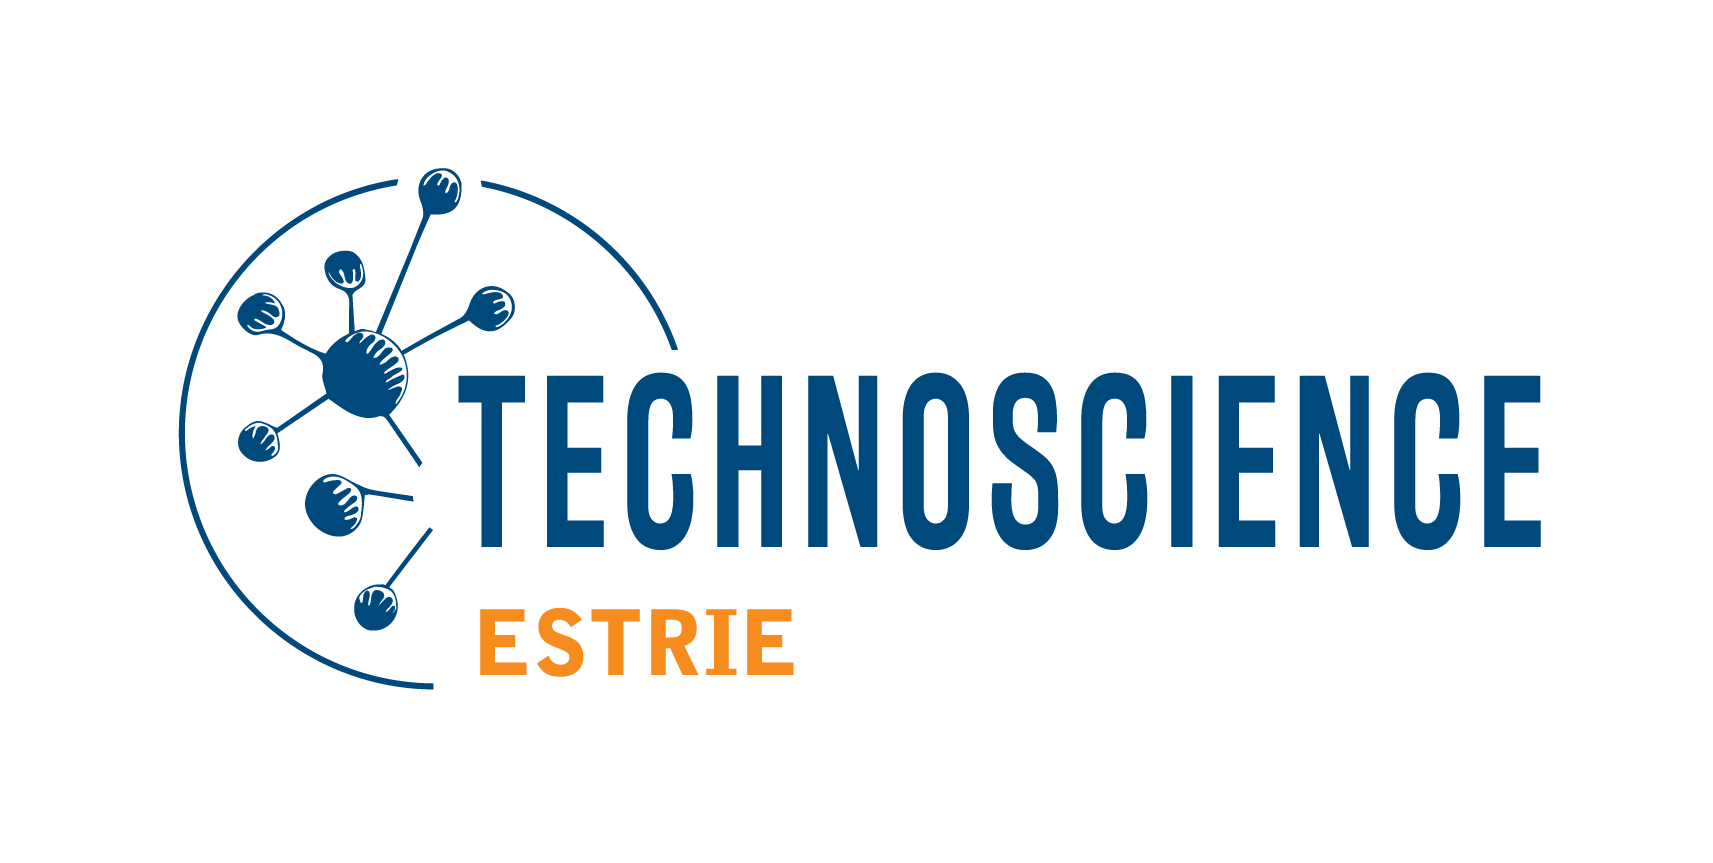 Technoscience Estrie